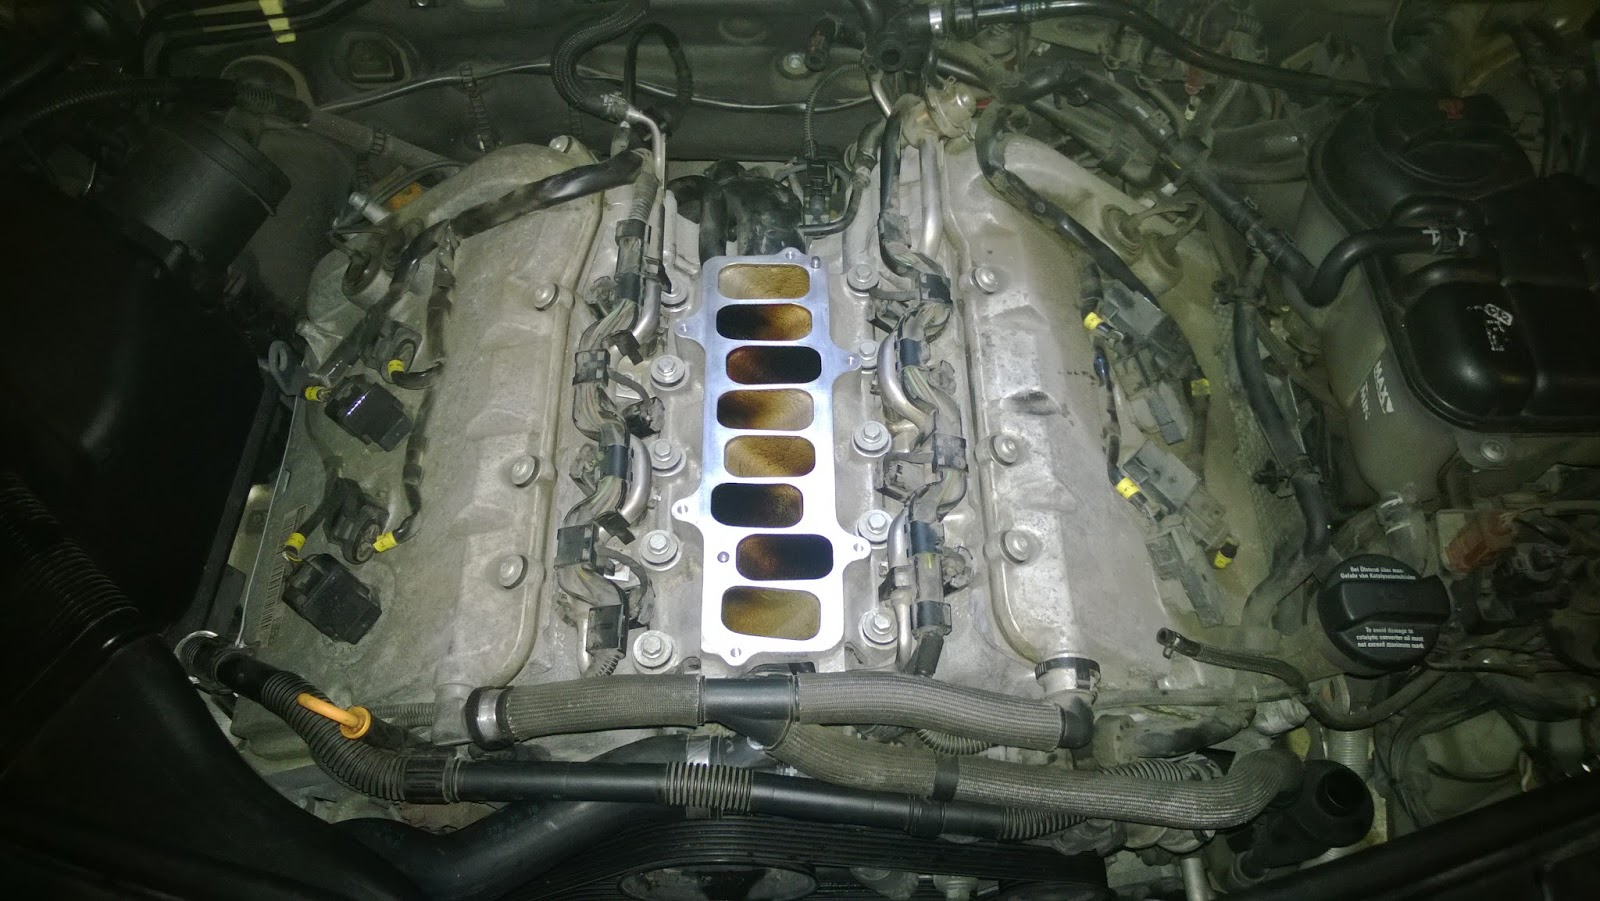 Before taking out lower manifold.